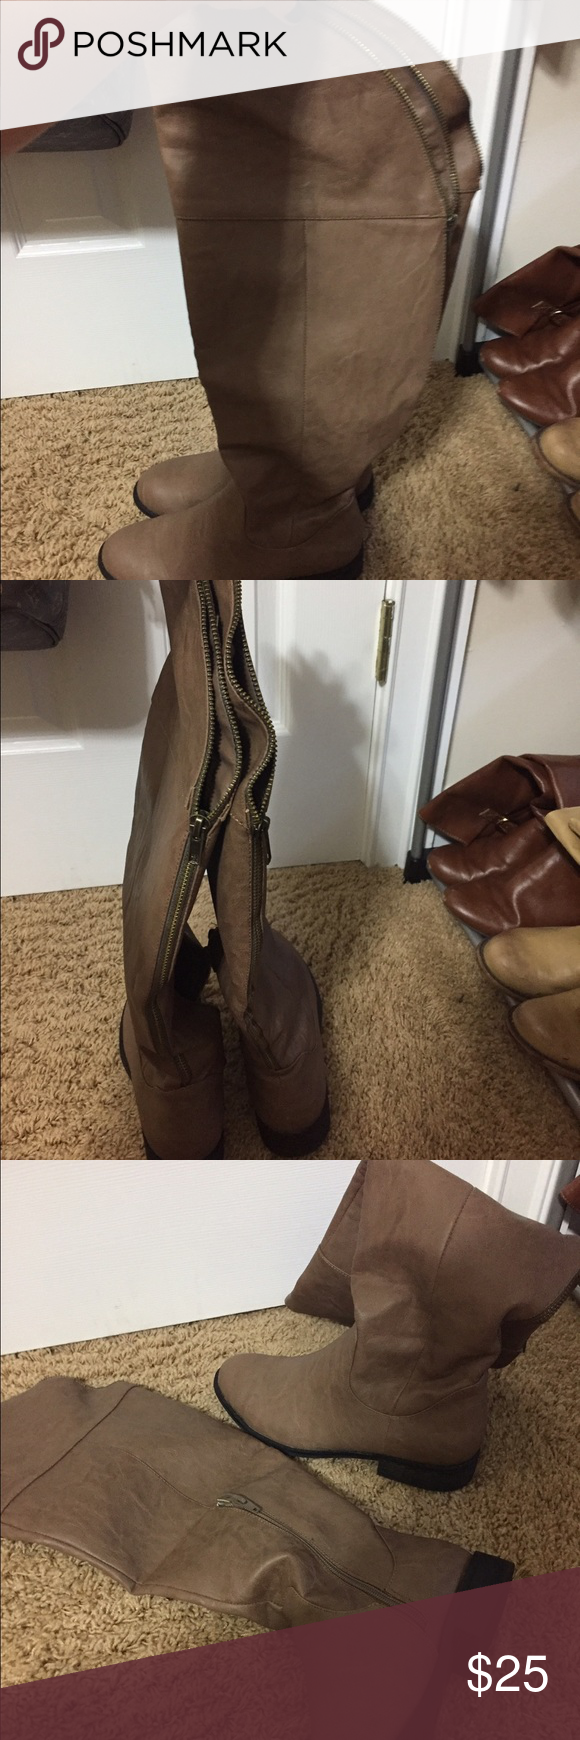 Boots Excellent condition! Worn once Shoes Over the Knee Boots